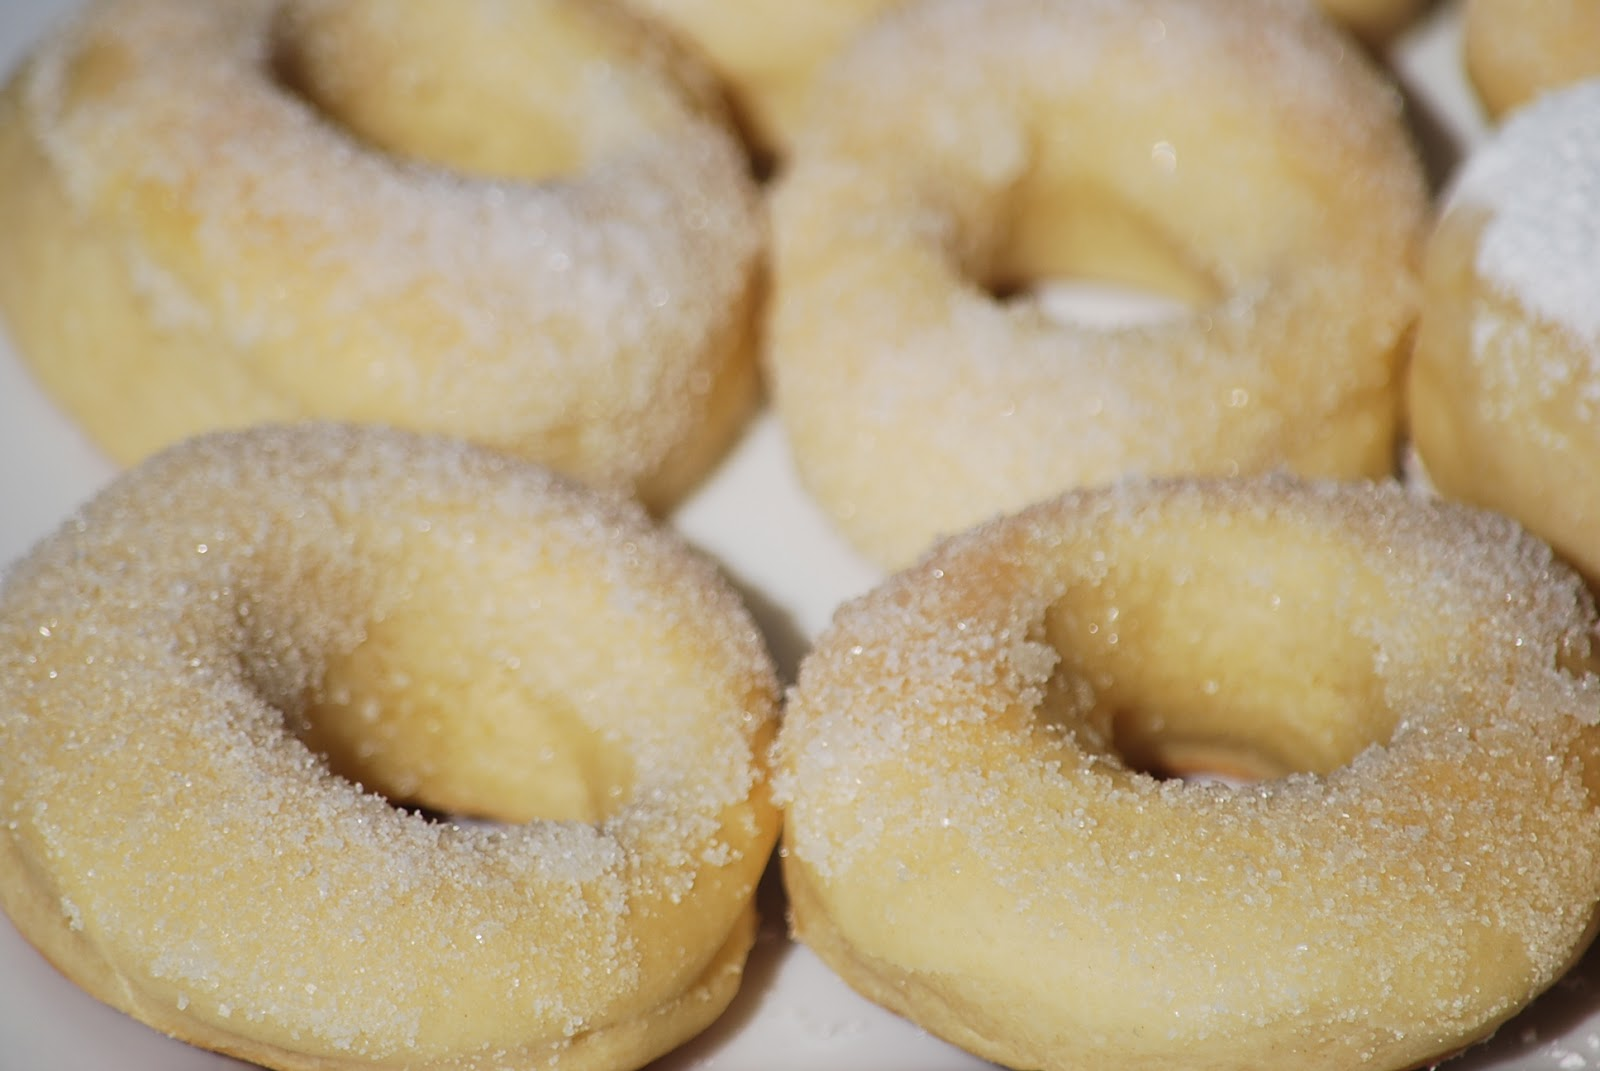 My story in recipes: Baked Doughnuts